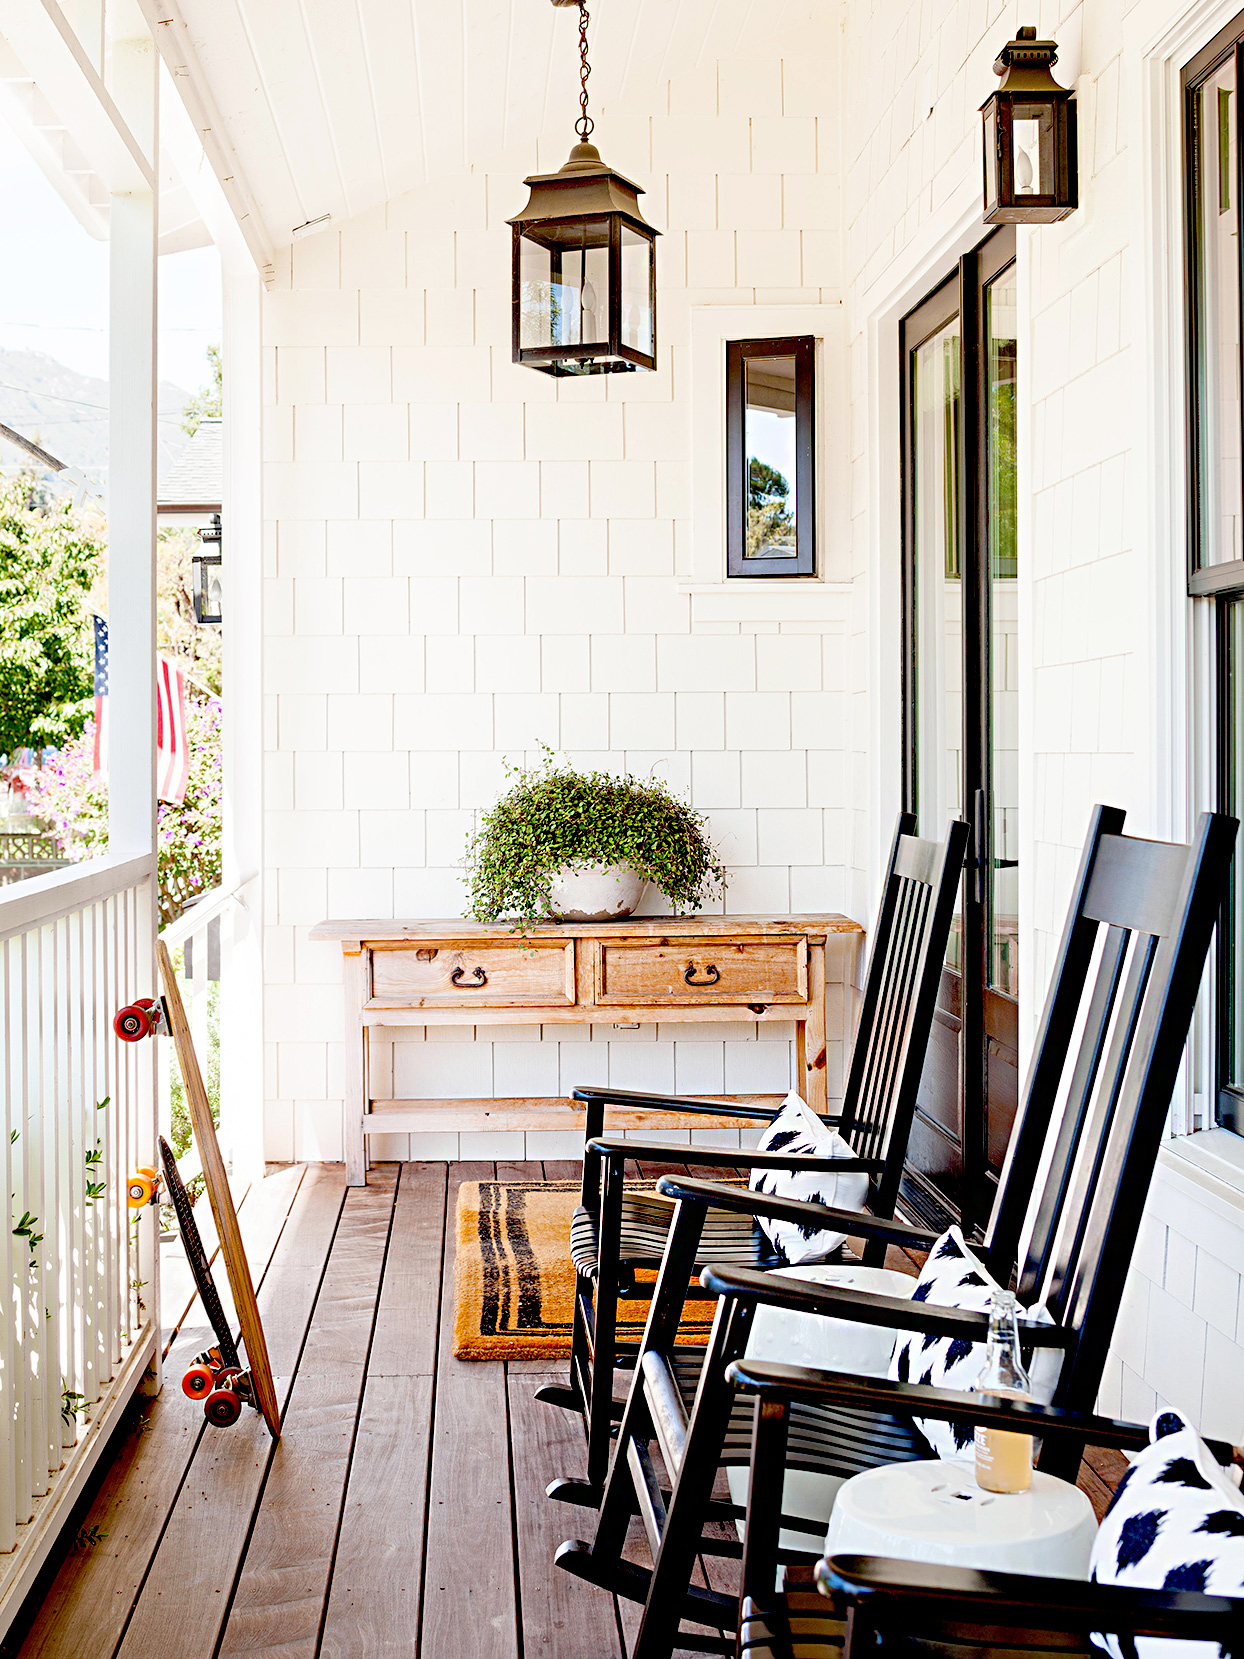 Curb Appeal in a Day: Dress Up Your Porch with Seating